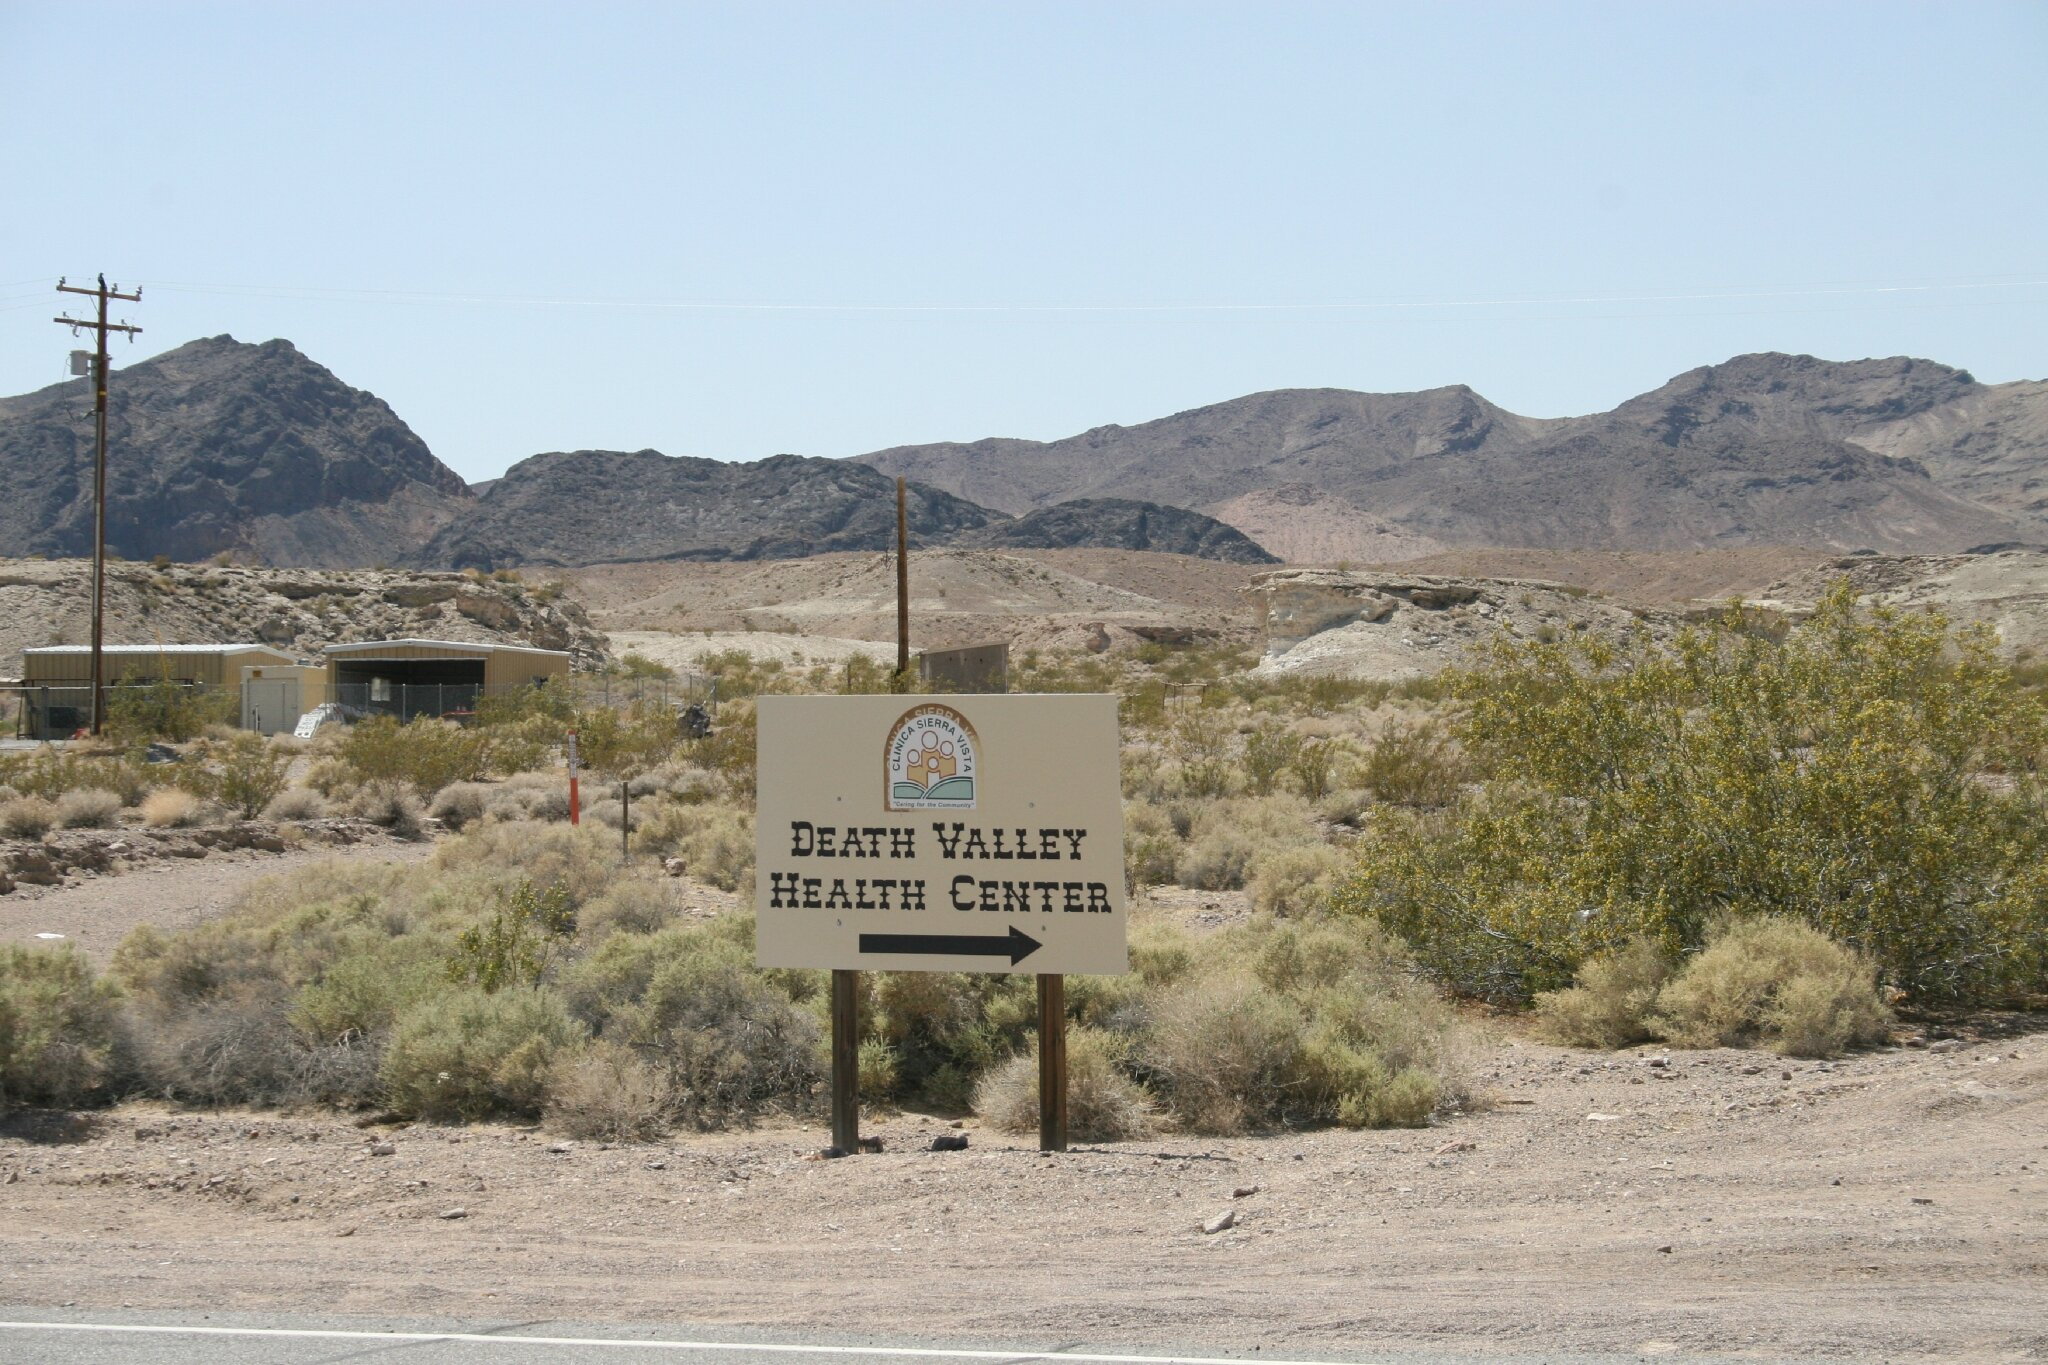 En route vers Death Valley